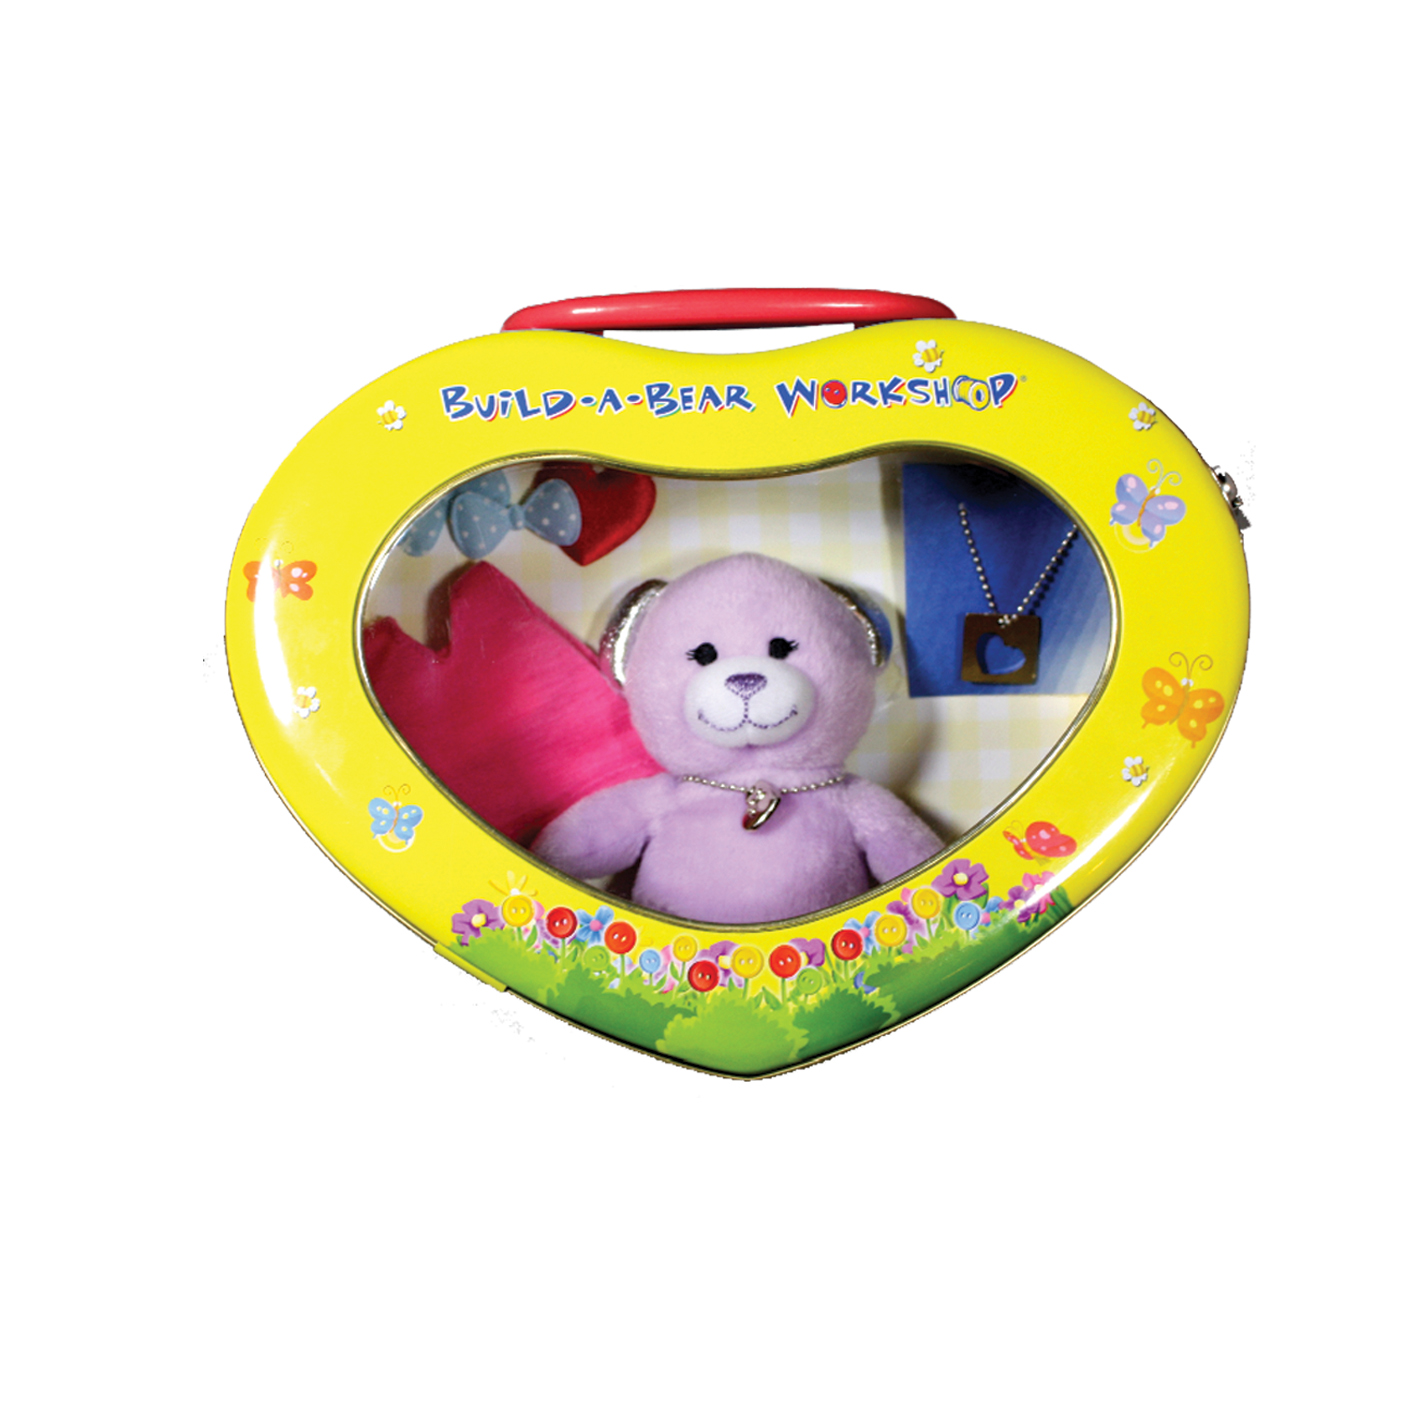 Build-a-Bear gift set